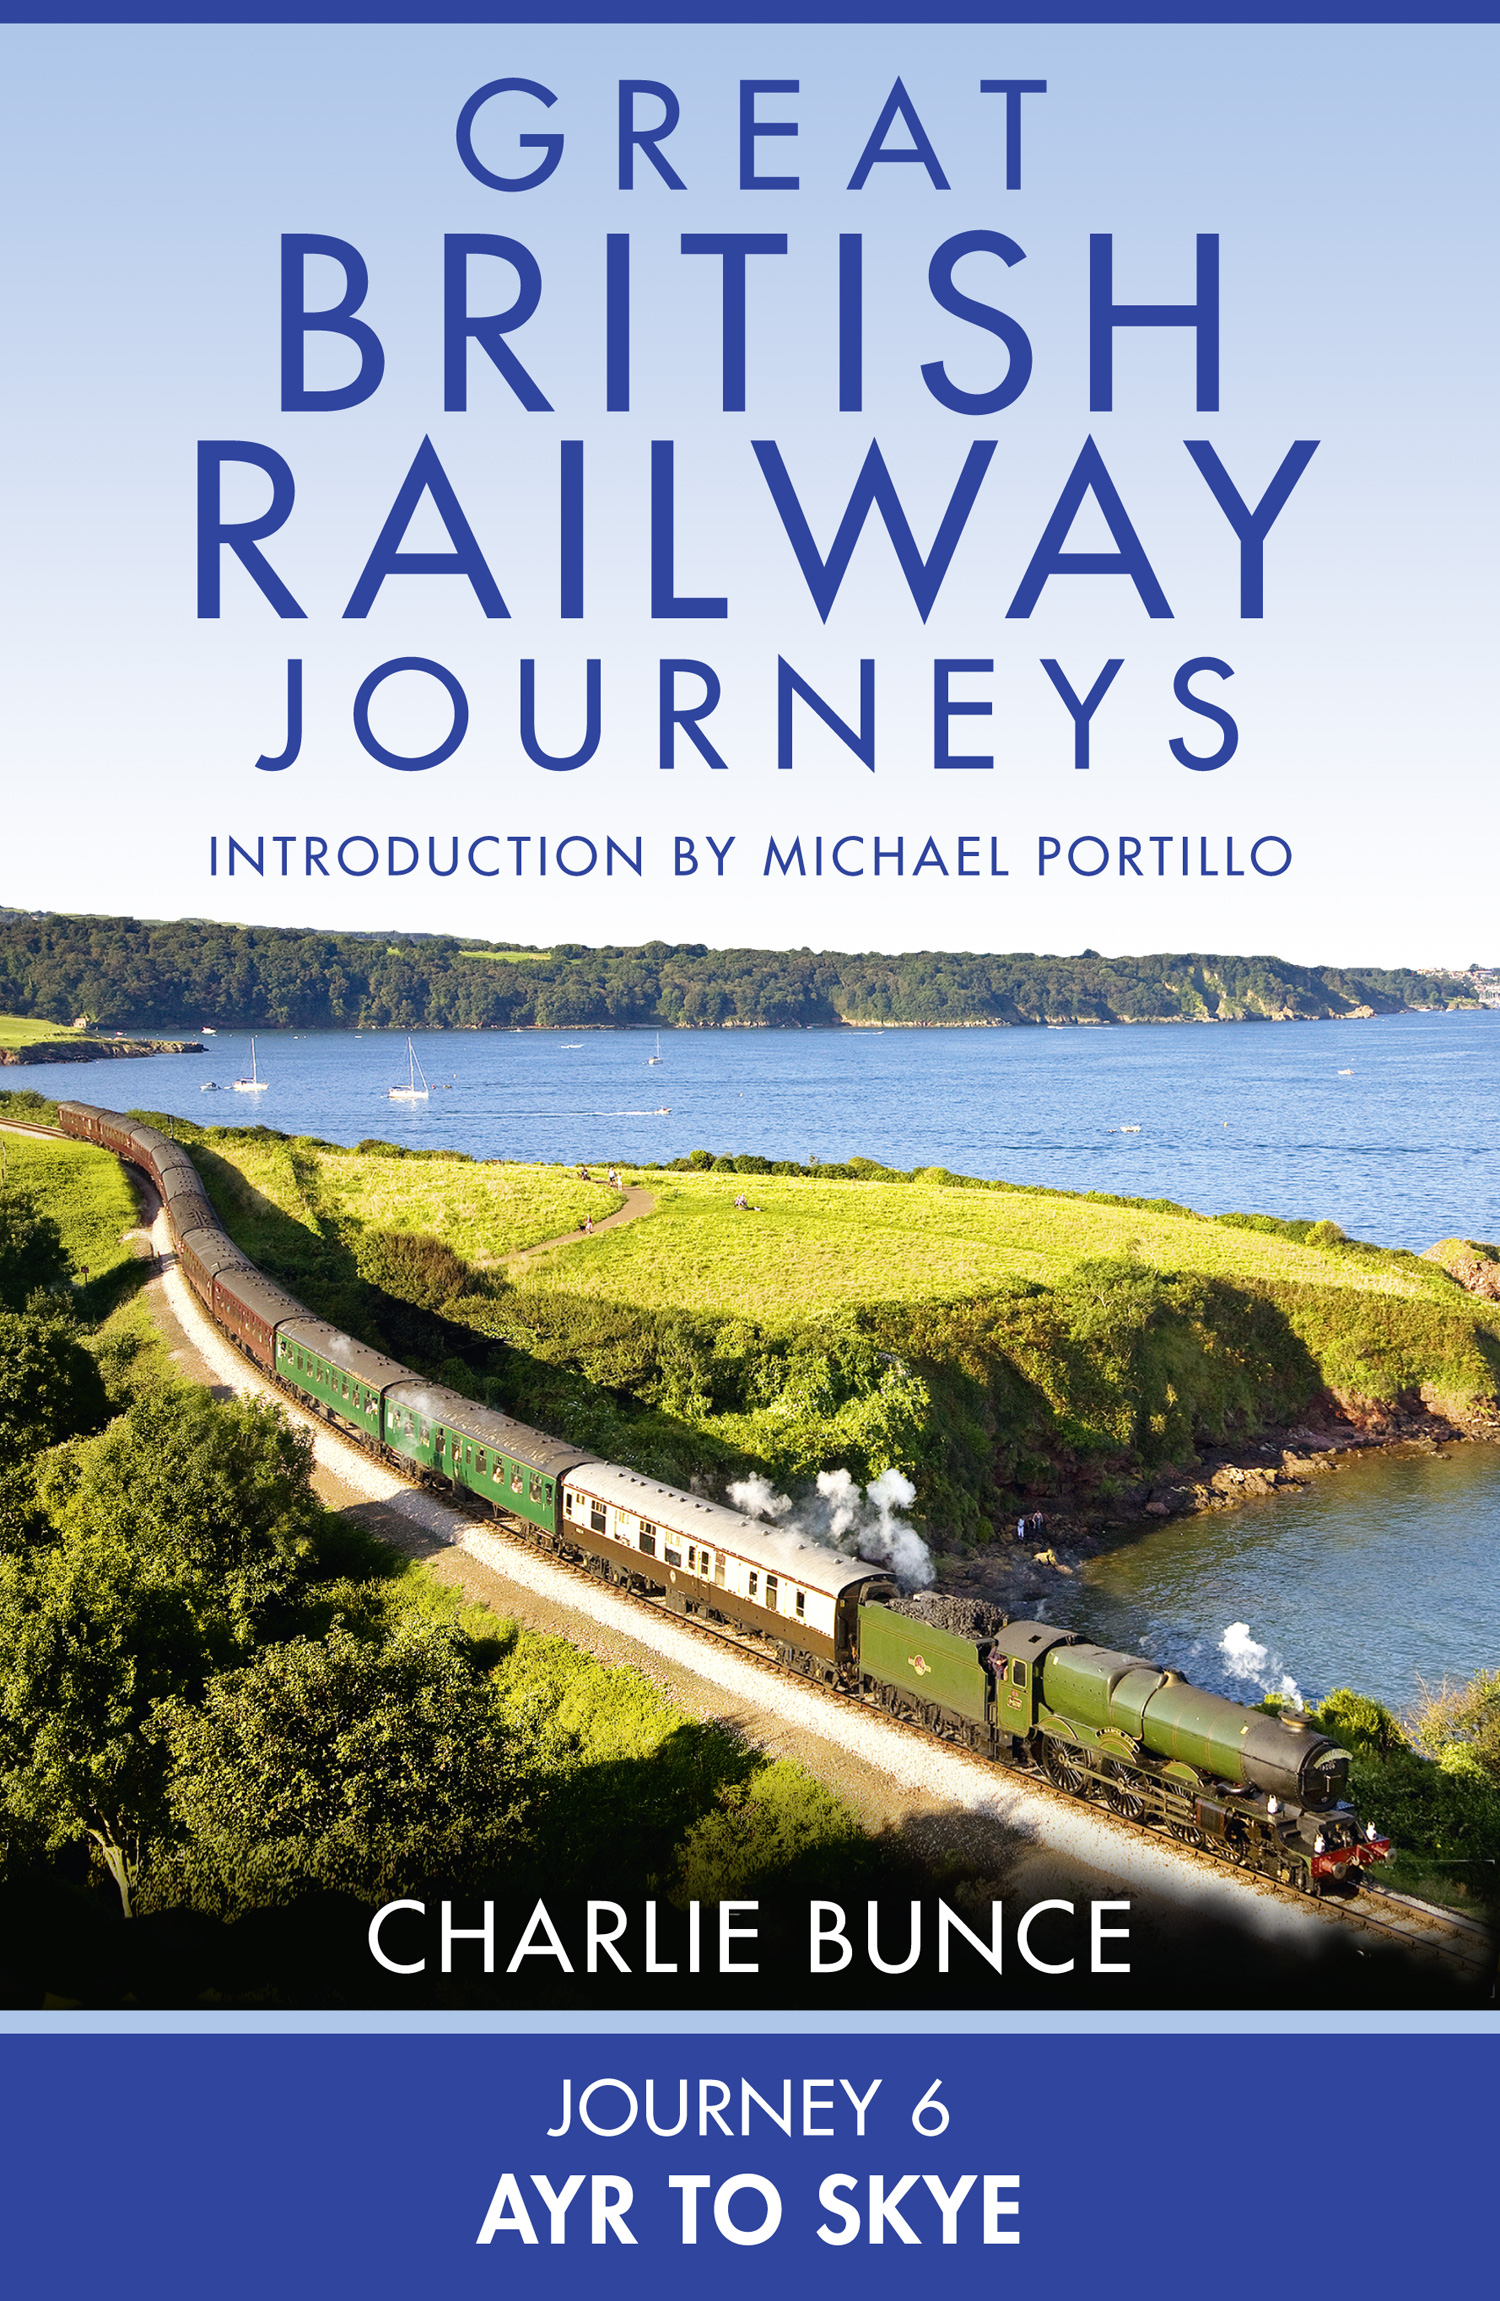 Journey 6: Ayr to Skye (Great British Railway Journeys,  Book 6)